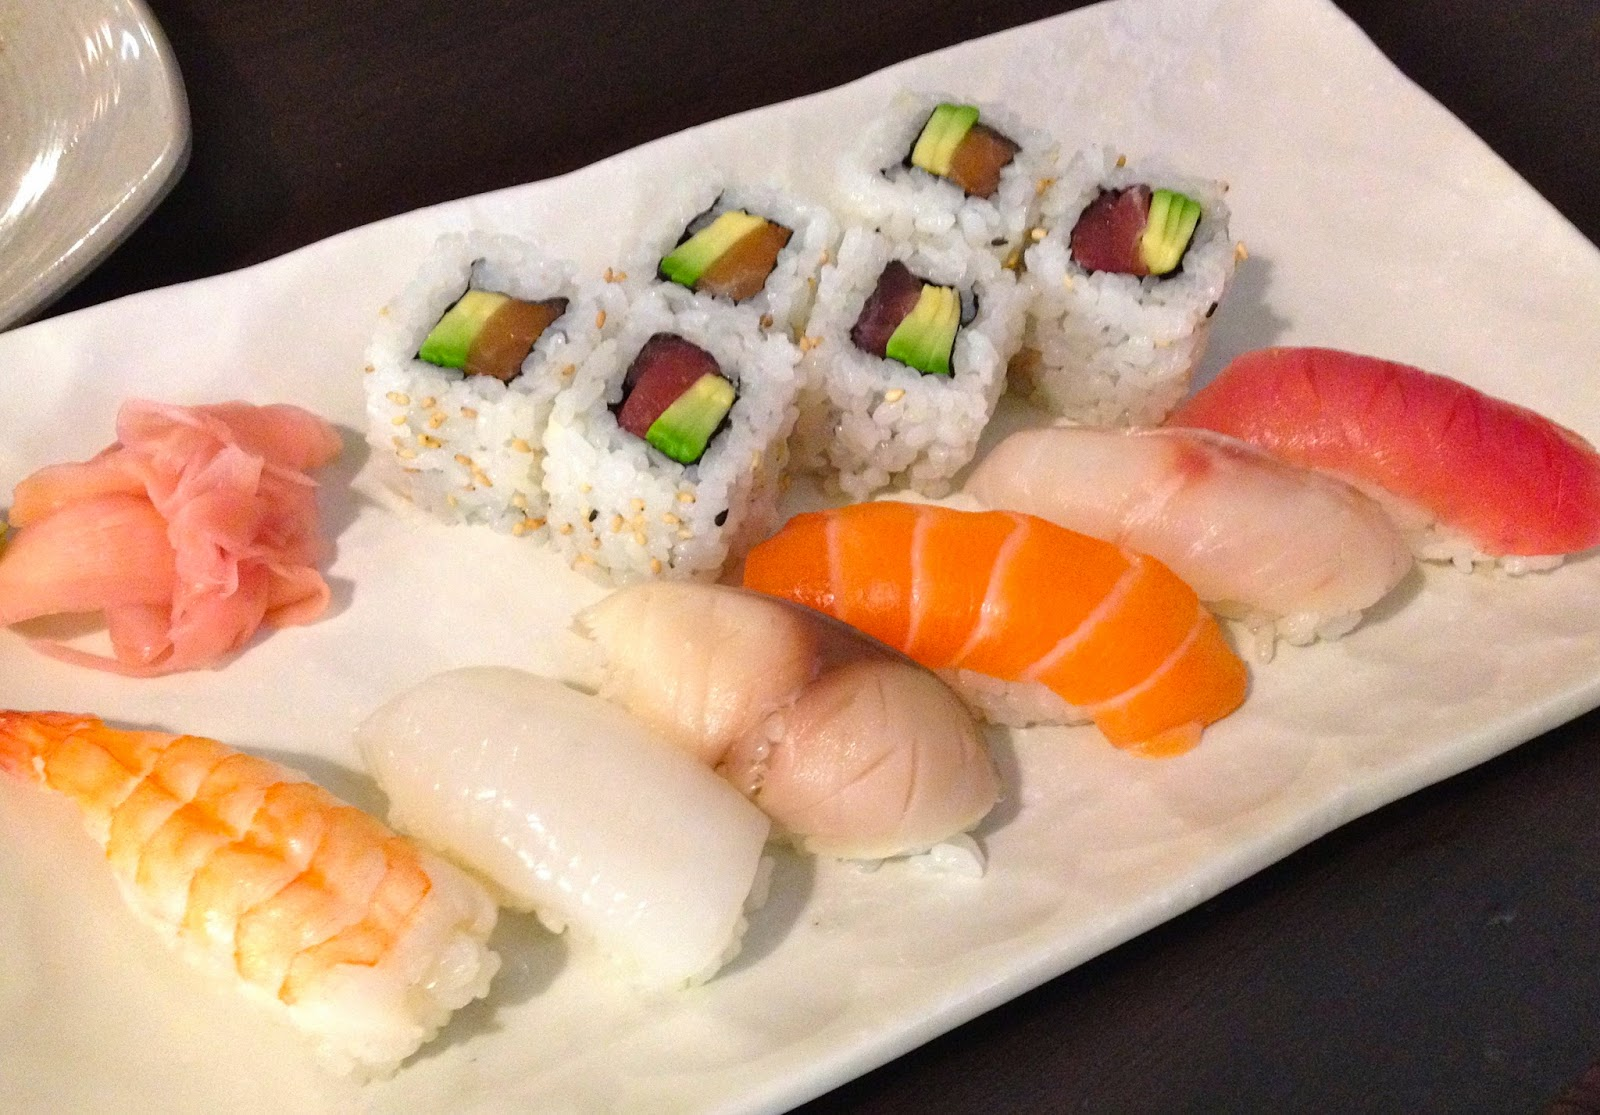 Delicious Looking Sushi Looking Sushi Sandwiches